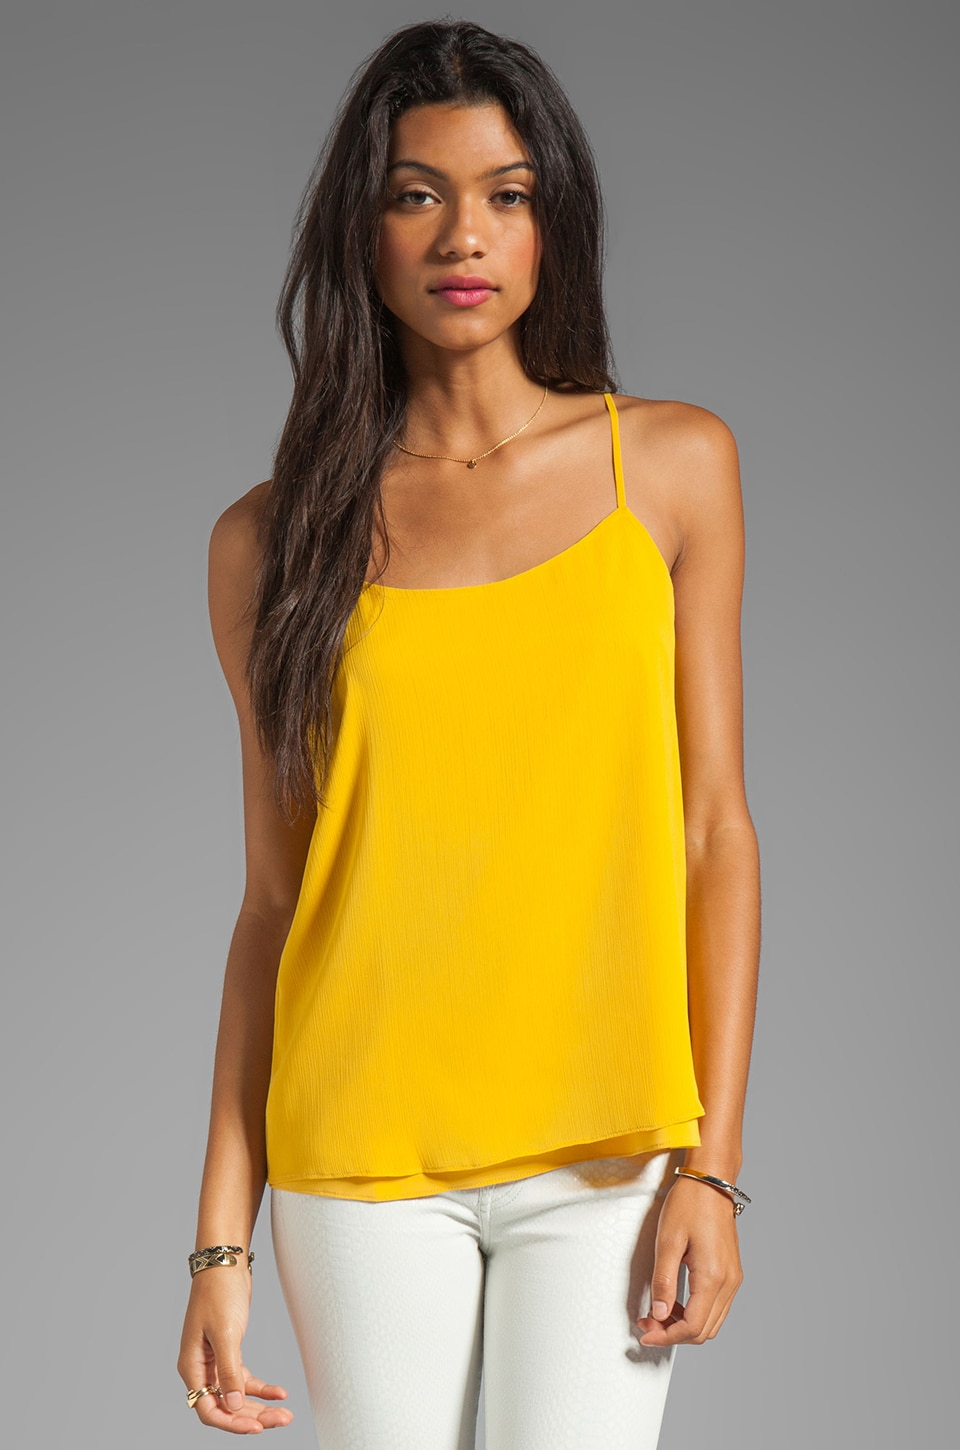 Alice + Olivia Crinkle Loose Top in Sunflower